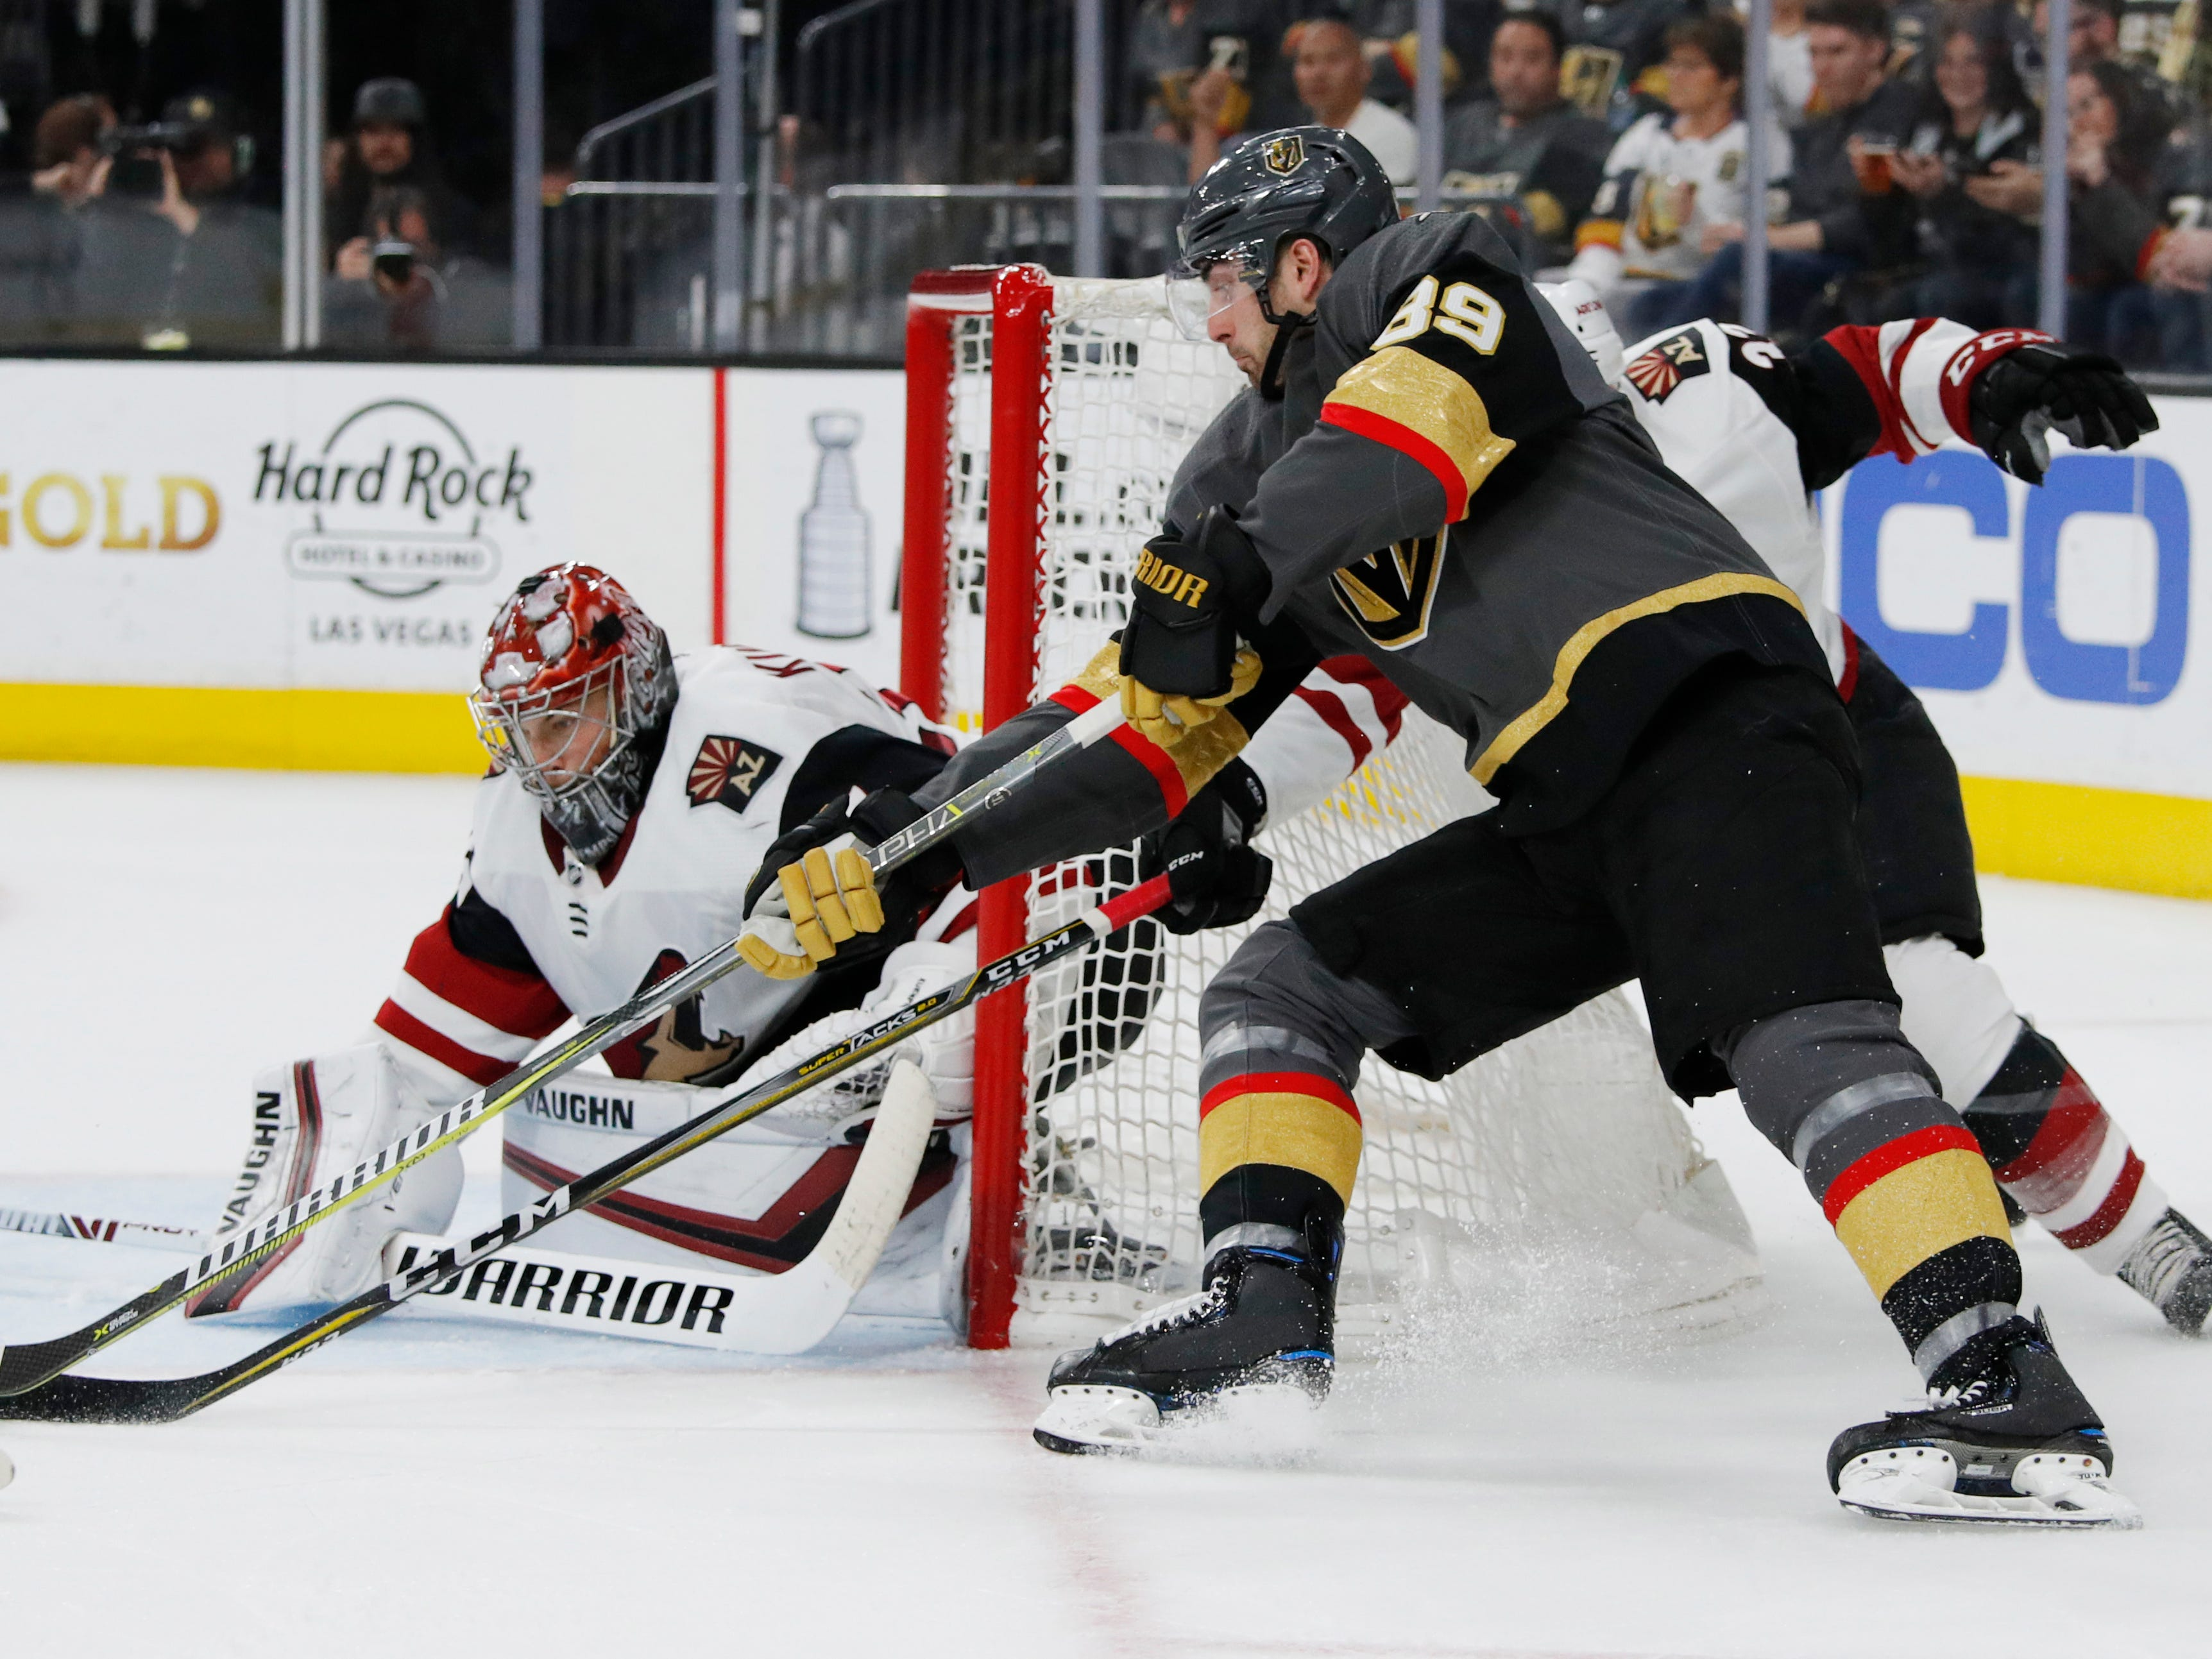 Vegas Golden Knights right wing Alex Tuch (89) attempts a shot on Arizona Coyotes goaltender Darcy Kuemper during the second period of an NHL hockey game Thursday, April 4, 2019, in Las Vegas.